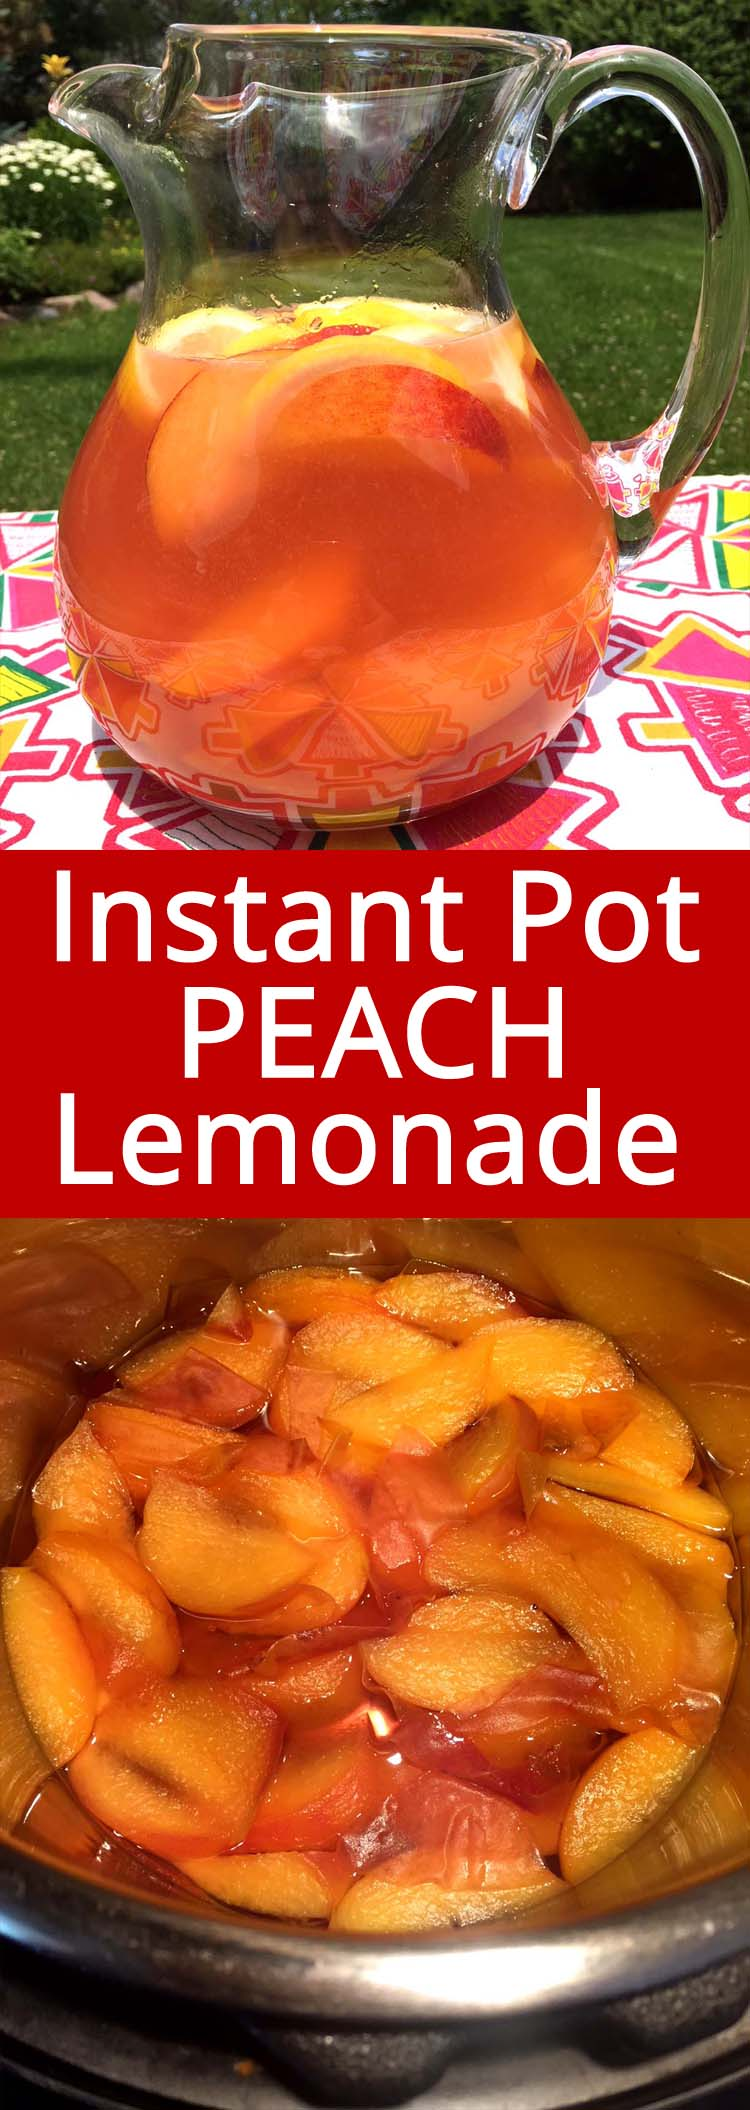 This Instant Pot fresh peach lemonade is the best peach lemonade I've ever tried!  Nothing compares to the taste of real fresh peaches!